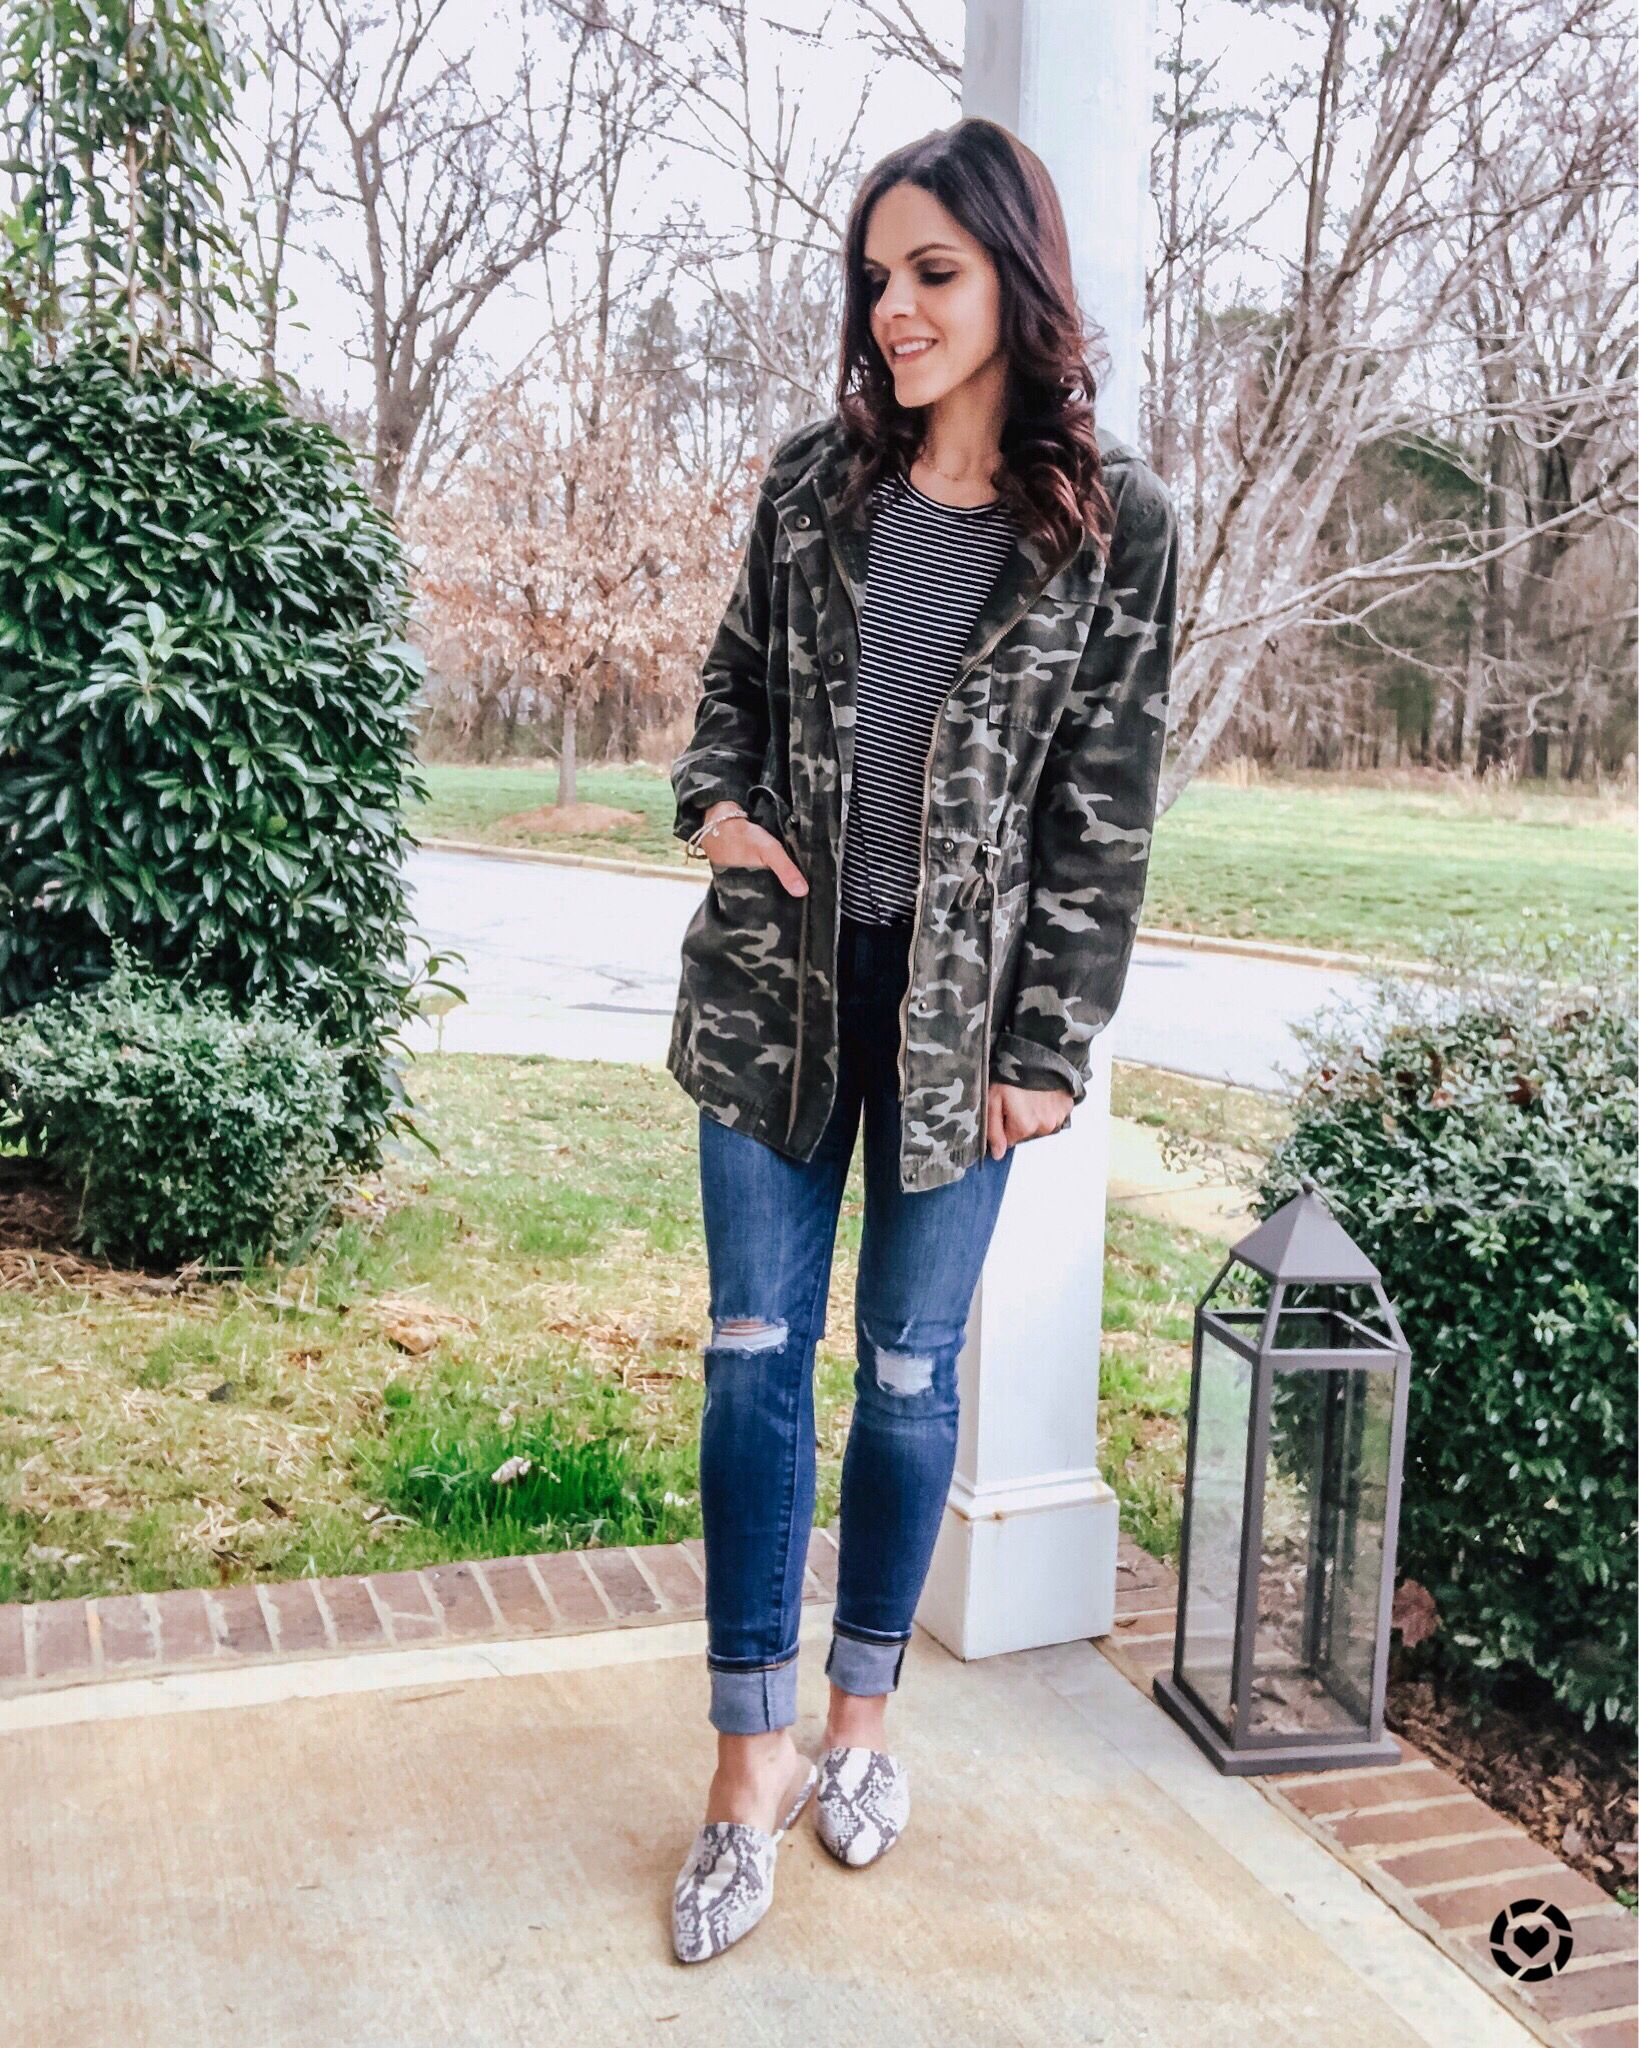 a034c03f1 Sarah Hancock on Instagram: Winter Fashion Inspiration   Cold weather style    camo   utility   layering   mules   snakeskin